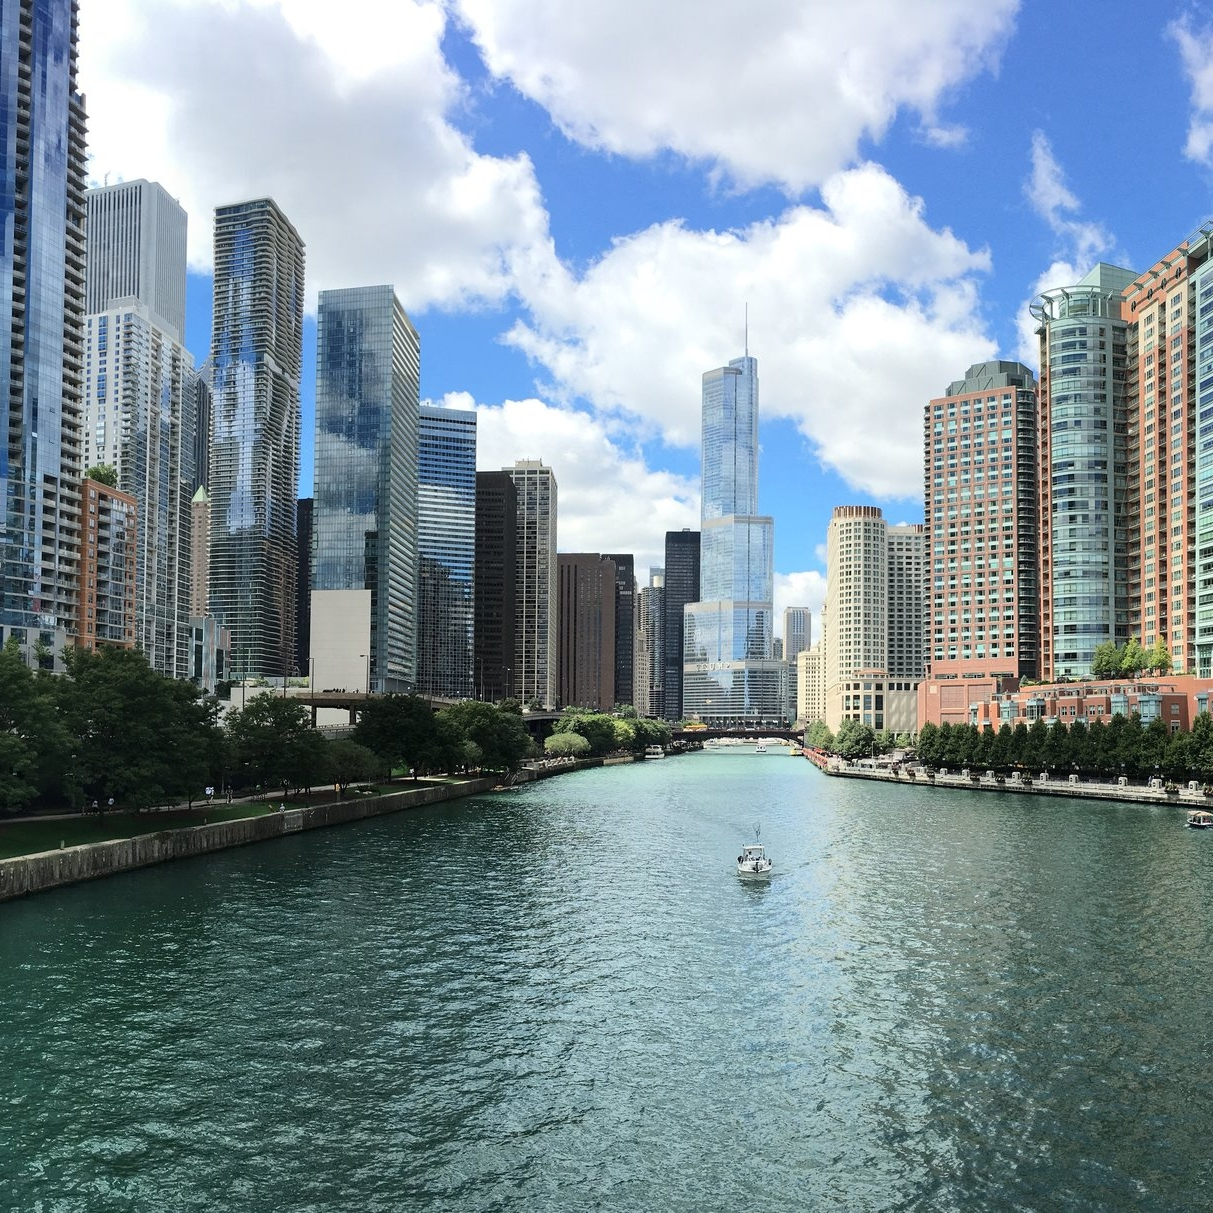 Lakeshore East - Truly a unique neighborhood, Lakeshore East redefines urban living with striking lake views, world class parks, and top-notch architecture. Residents enjoy boutique restaurants and a tranquil oasis from the busy hustle and bustle of the cityscape.